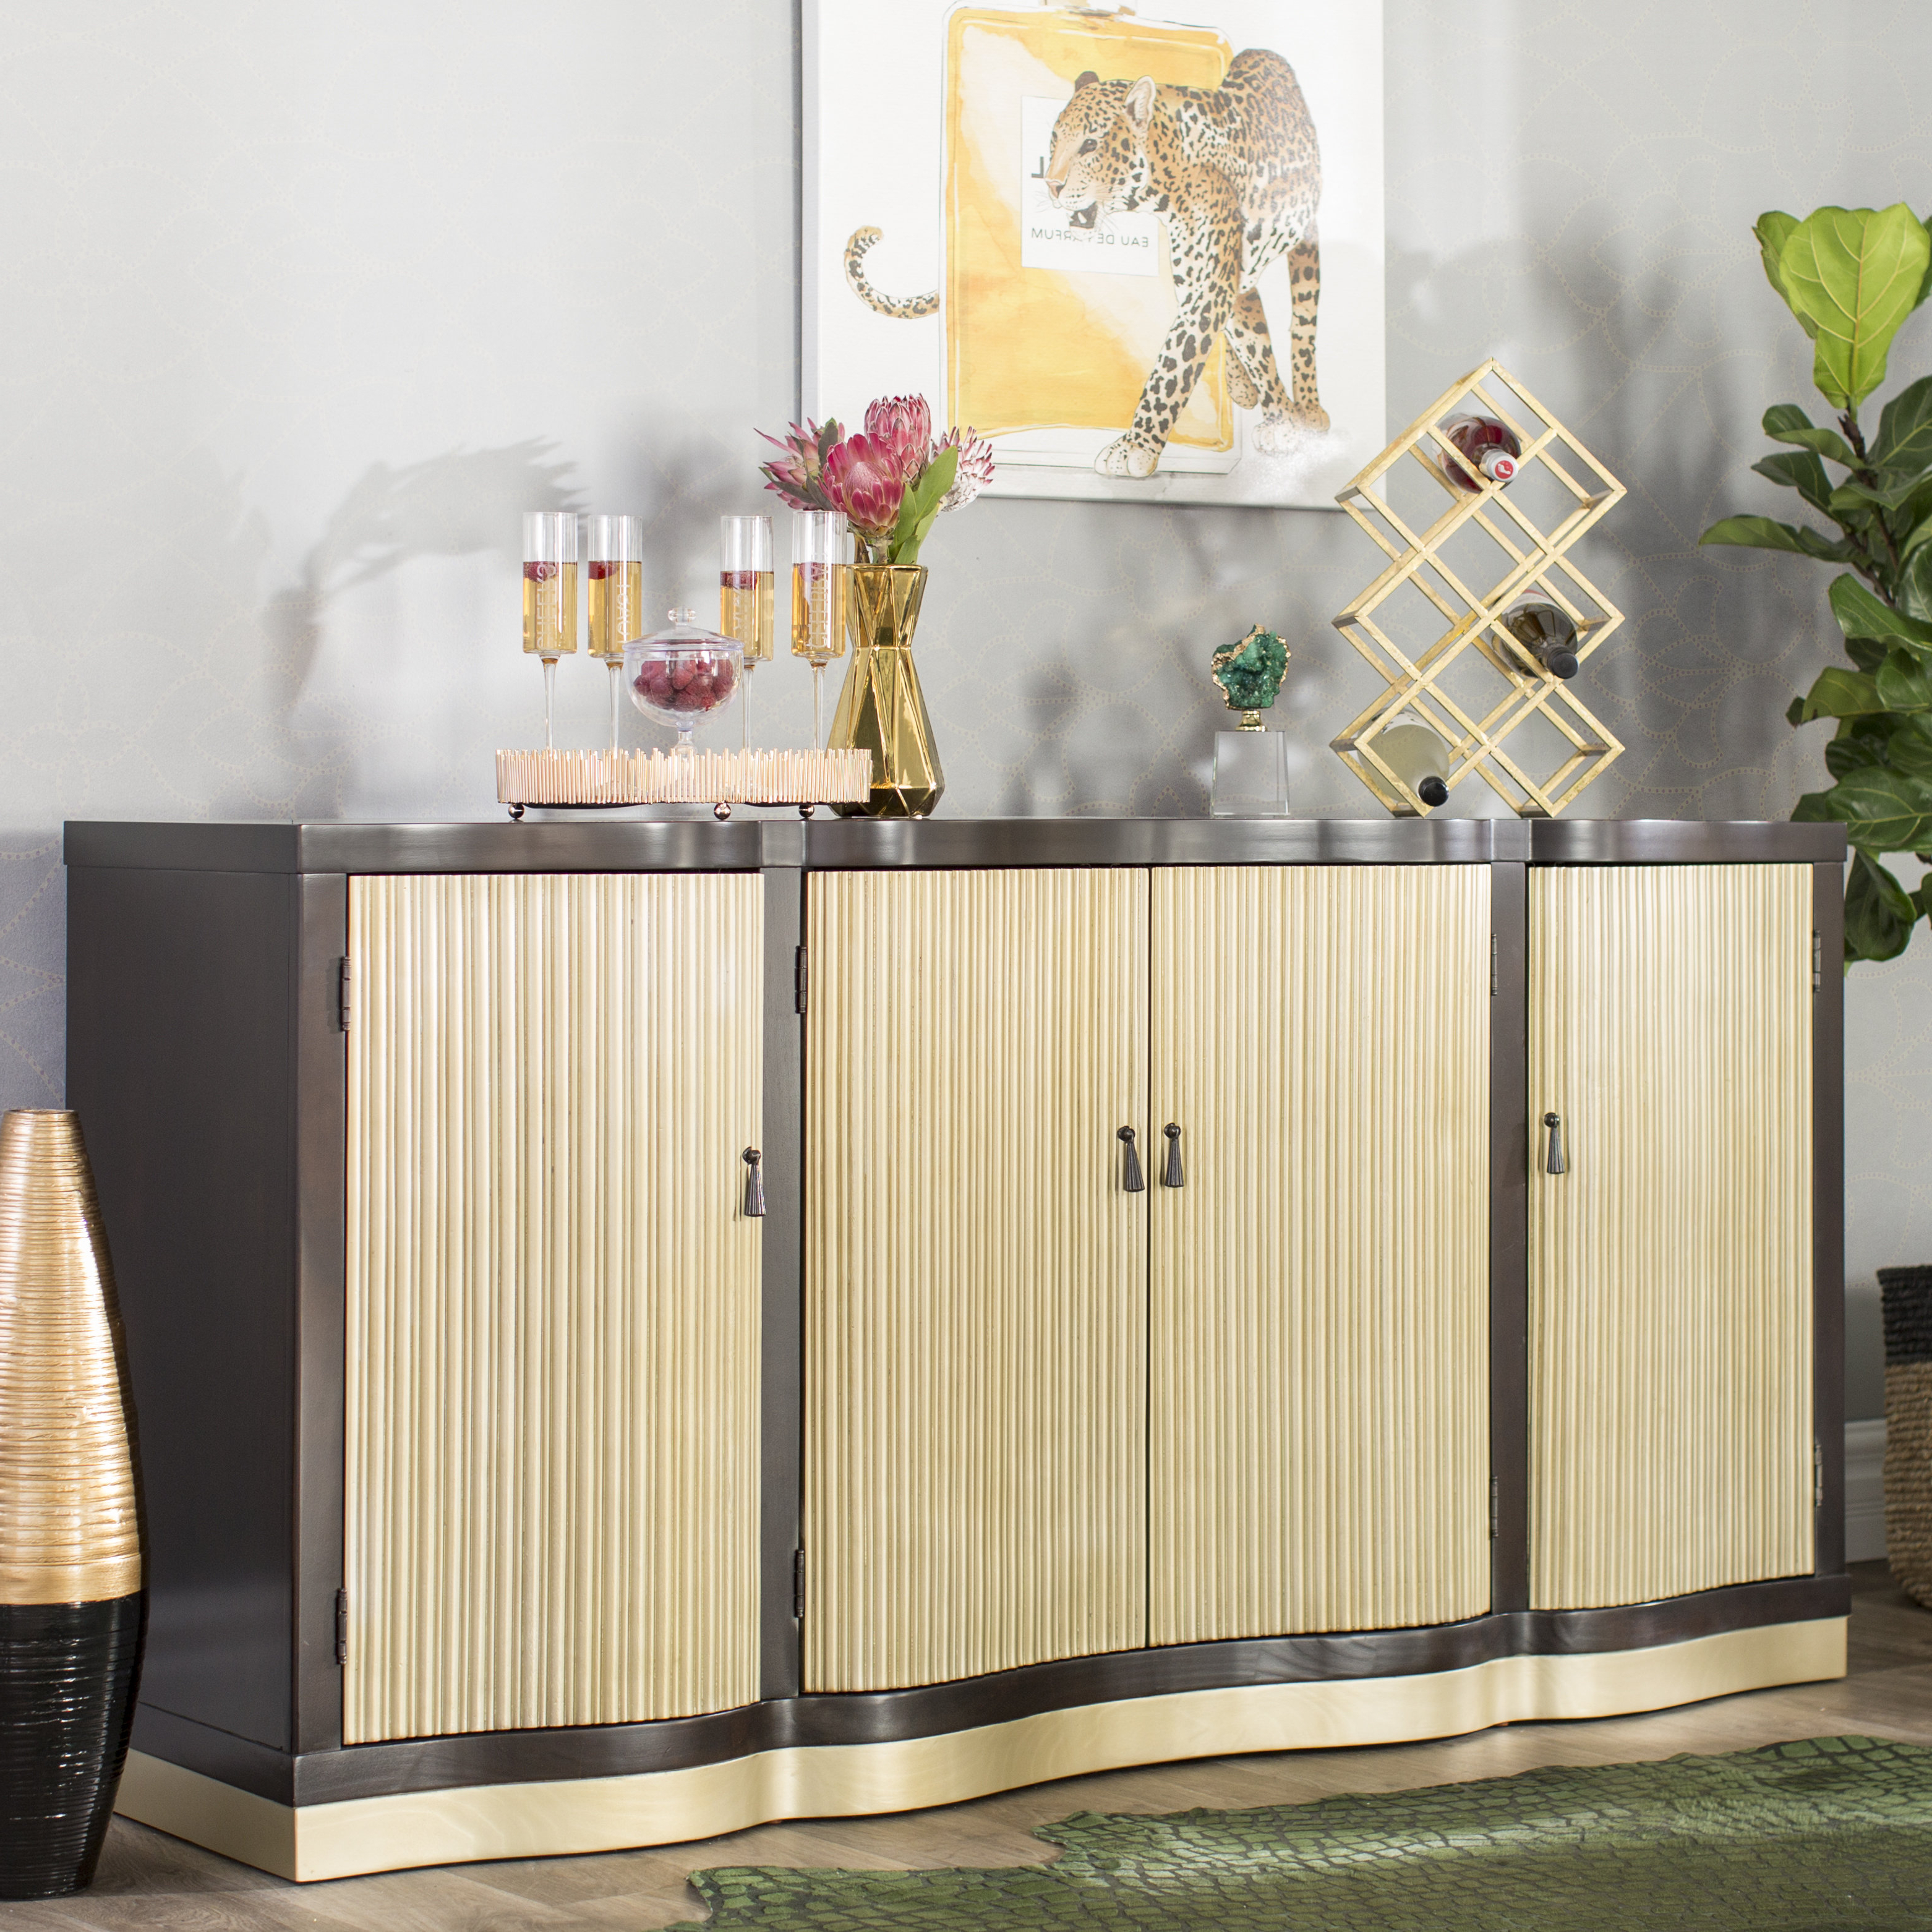 Choncey Sideboard Throughout Widely Used Wattisham Sideboards (View 3 of 20)